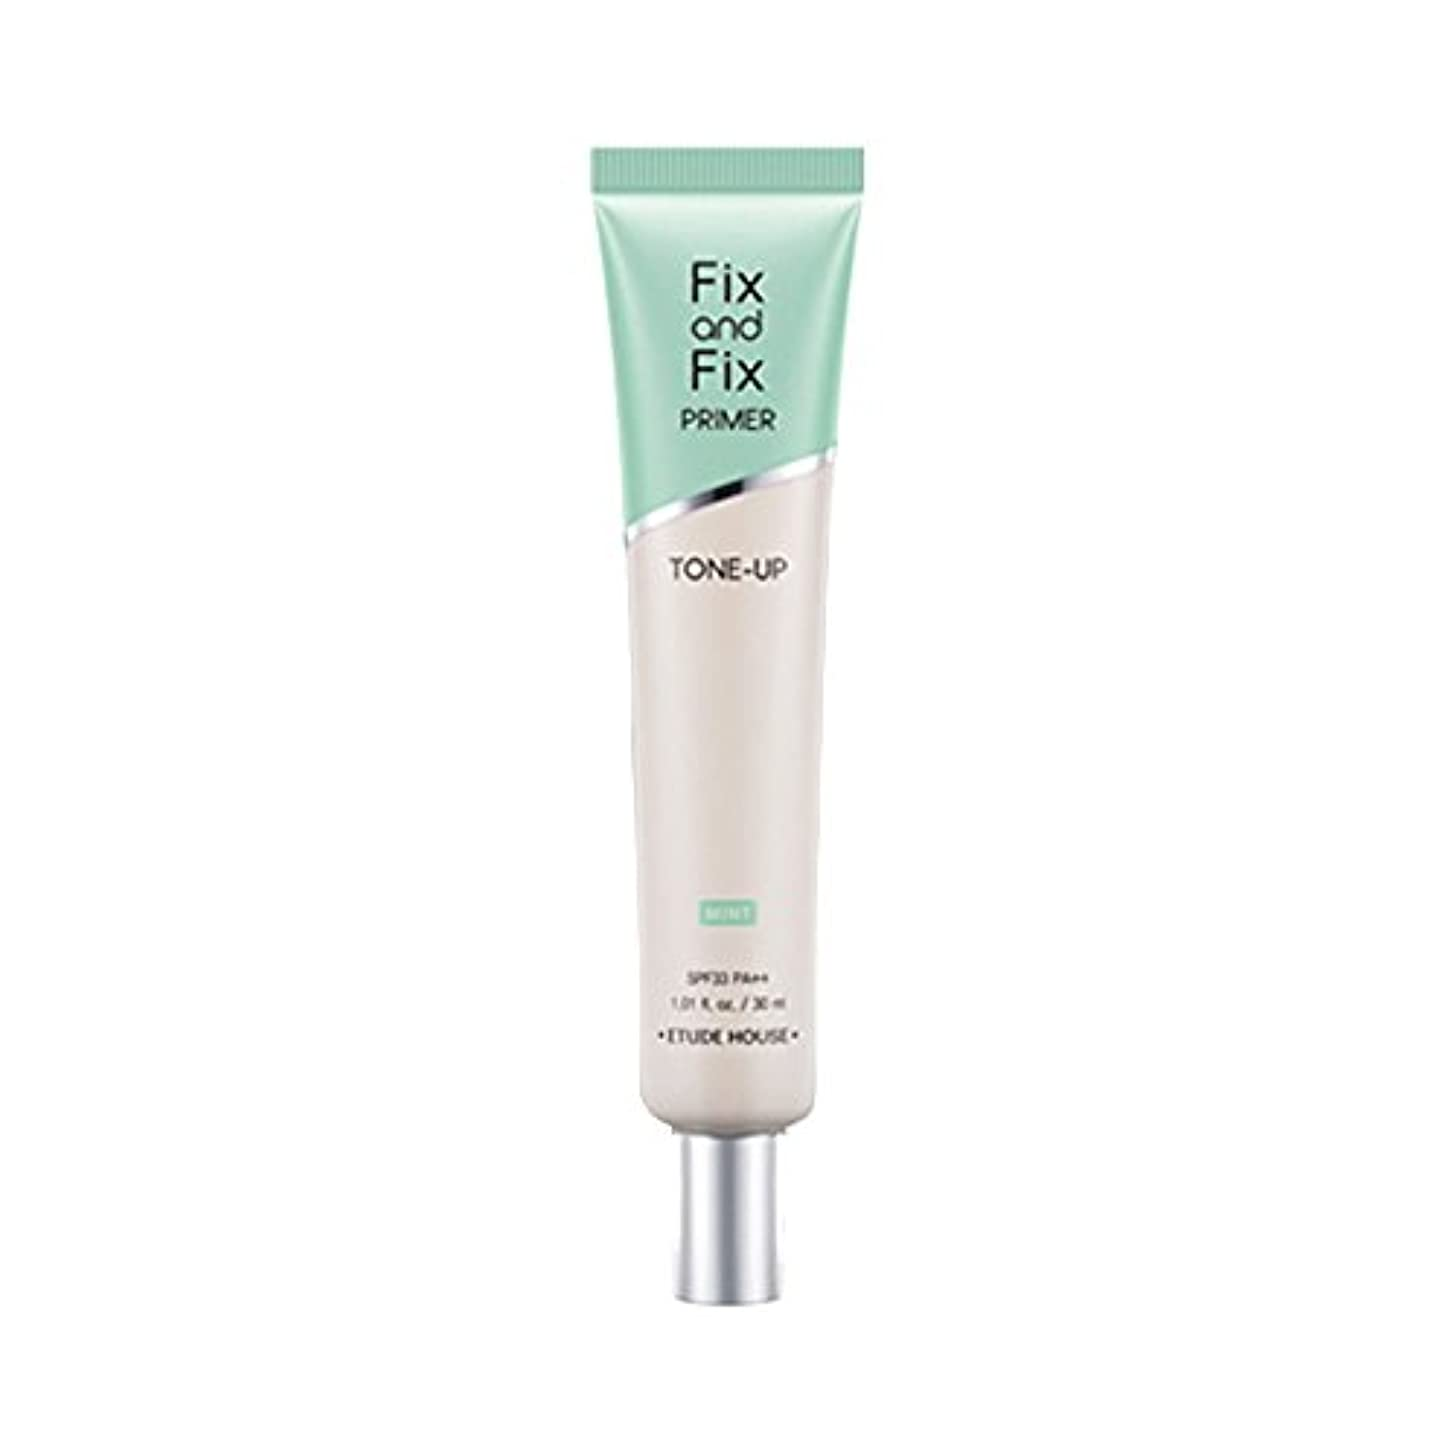 妻セールスマン非アクティブ(3 Pack) ETUDE HOUSE Fix And Fix Primer Tone Up Primer - Mint (並行輸入品)